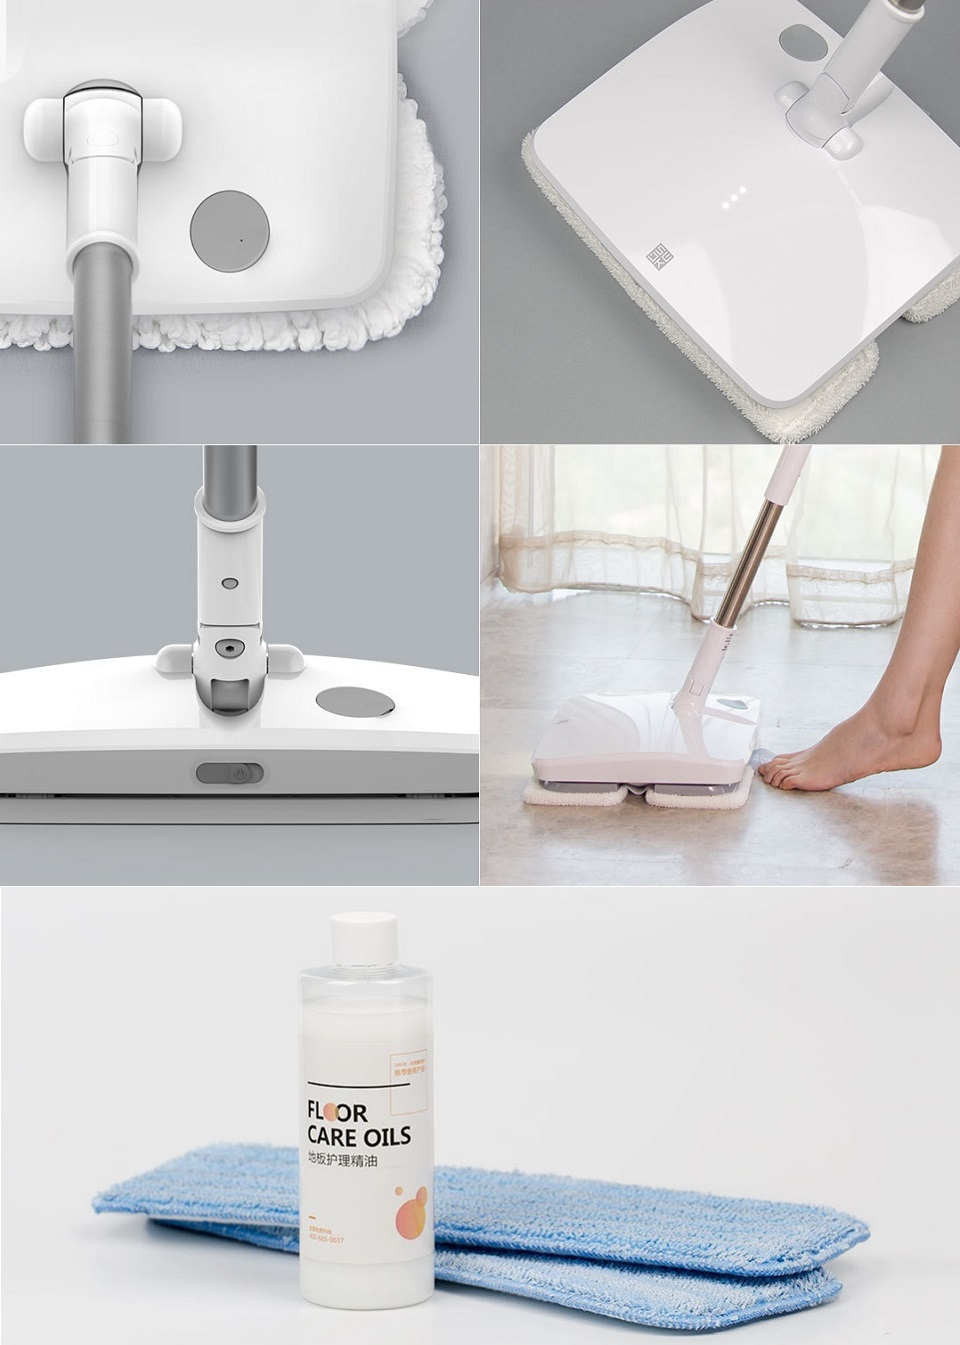 SWDK Полотер/Электрошвабра Handheld Electric Mop дизайн и индикация